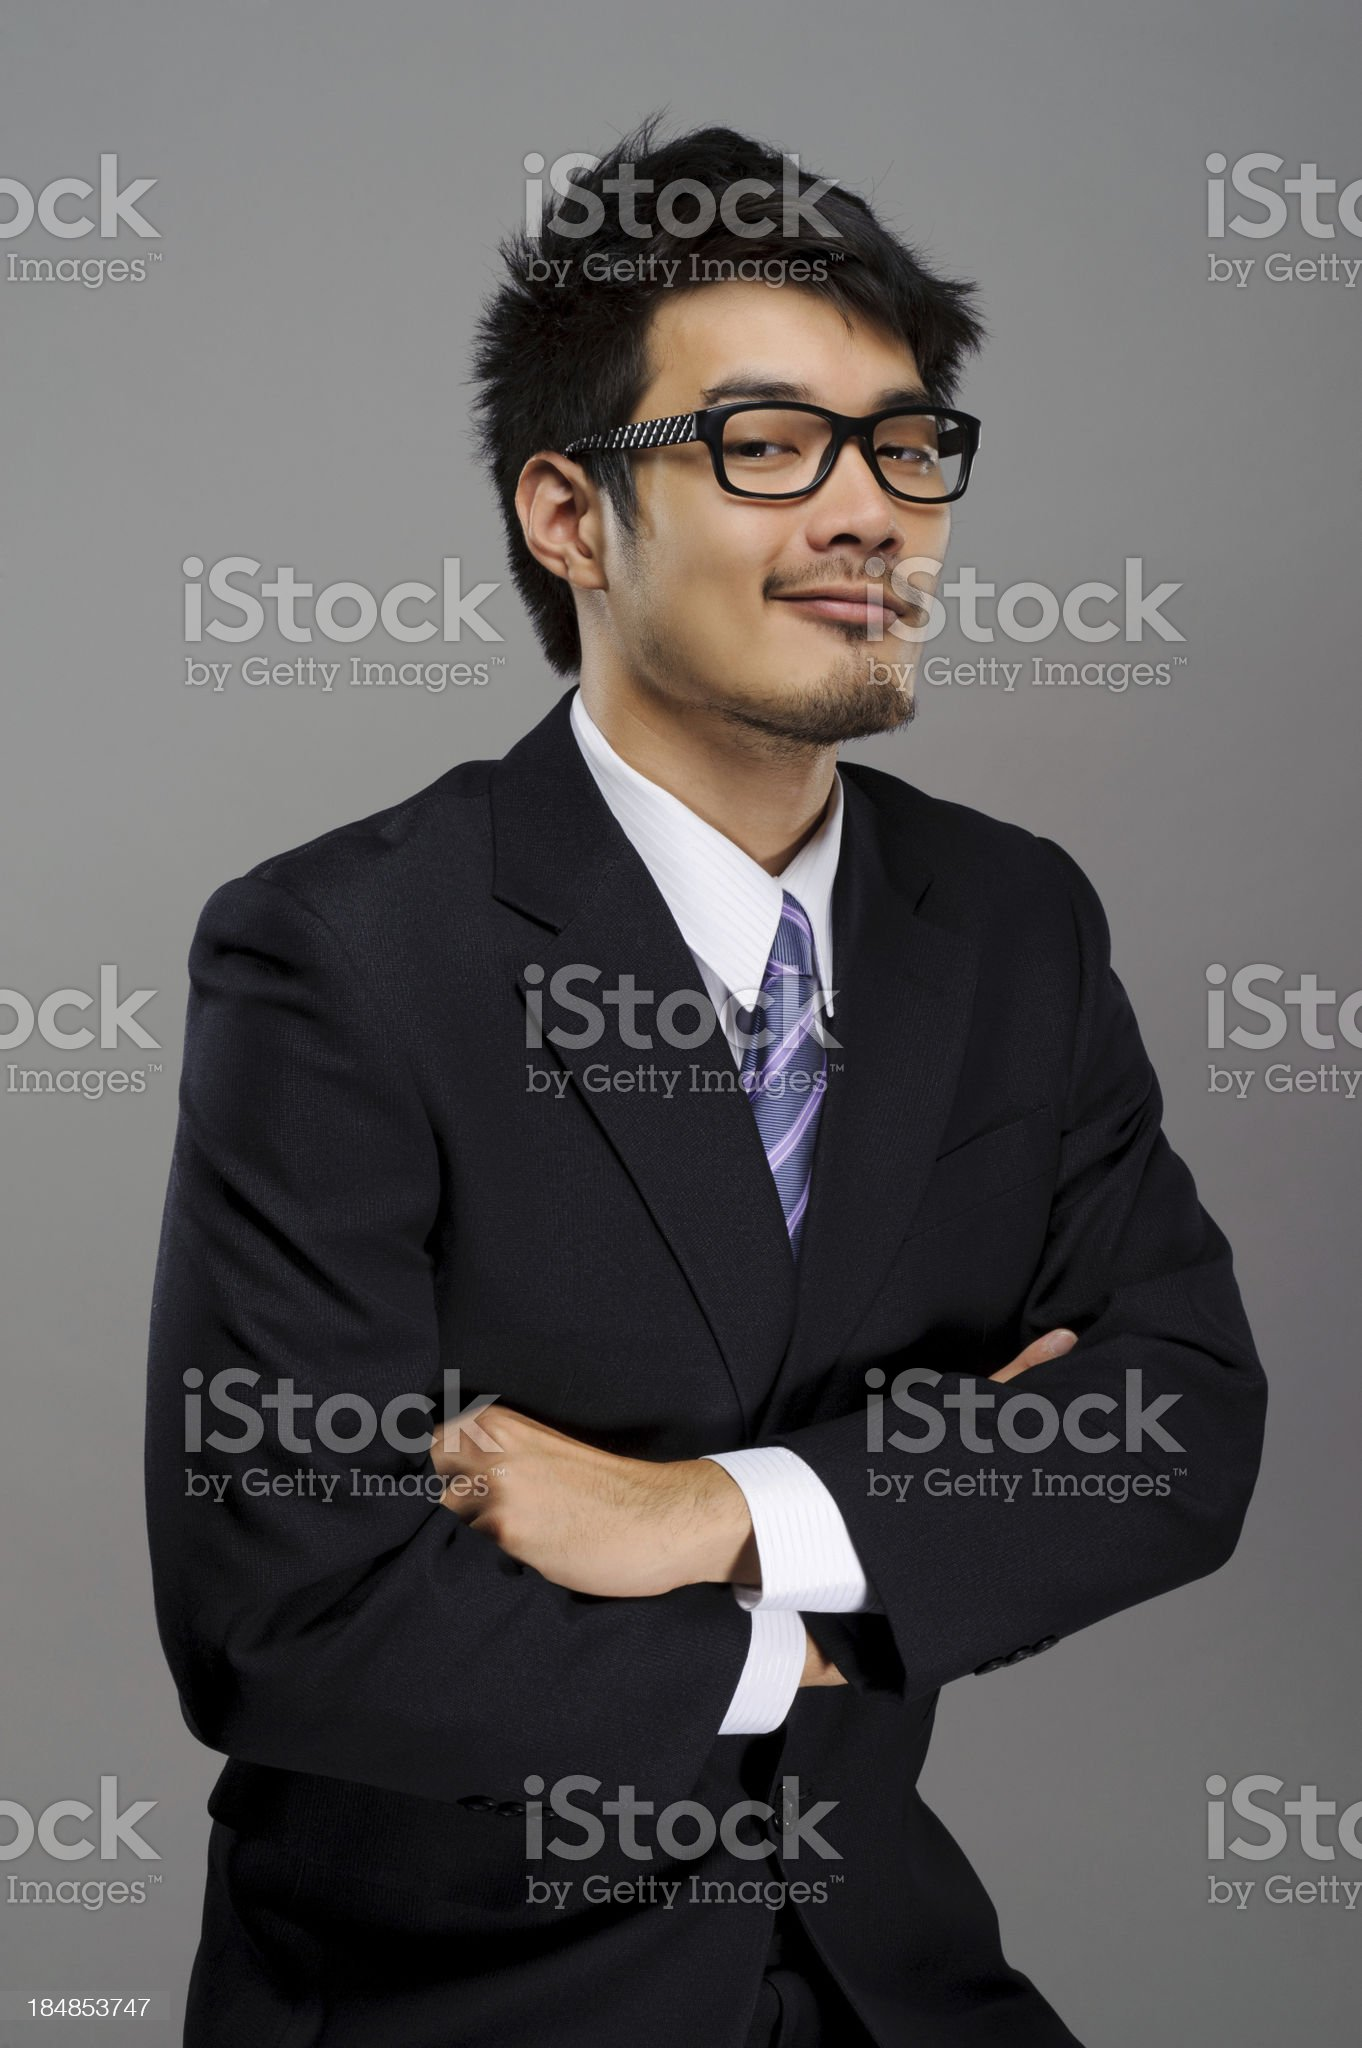 Sly business man royalty-free stock photo